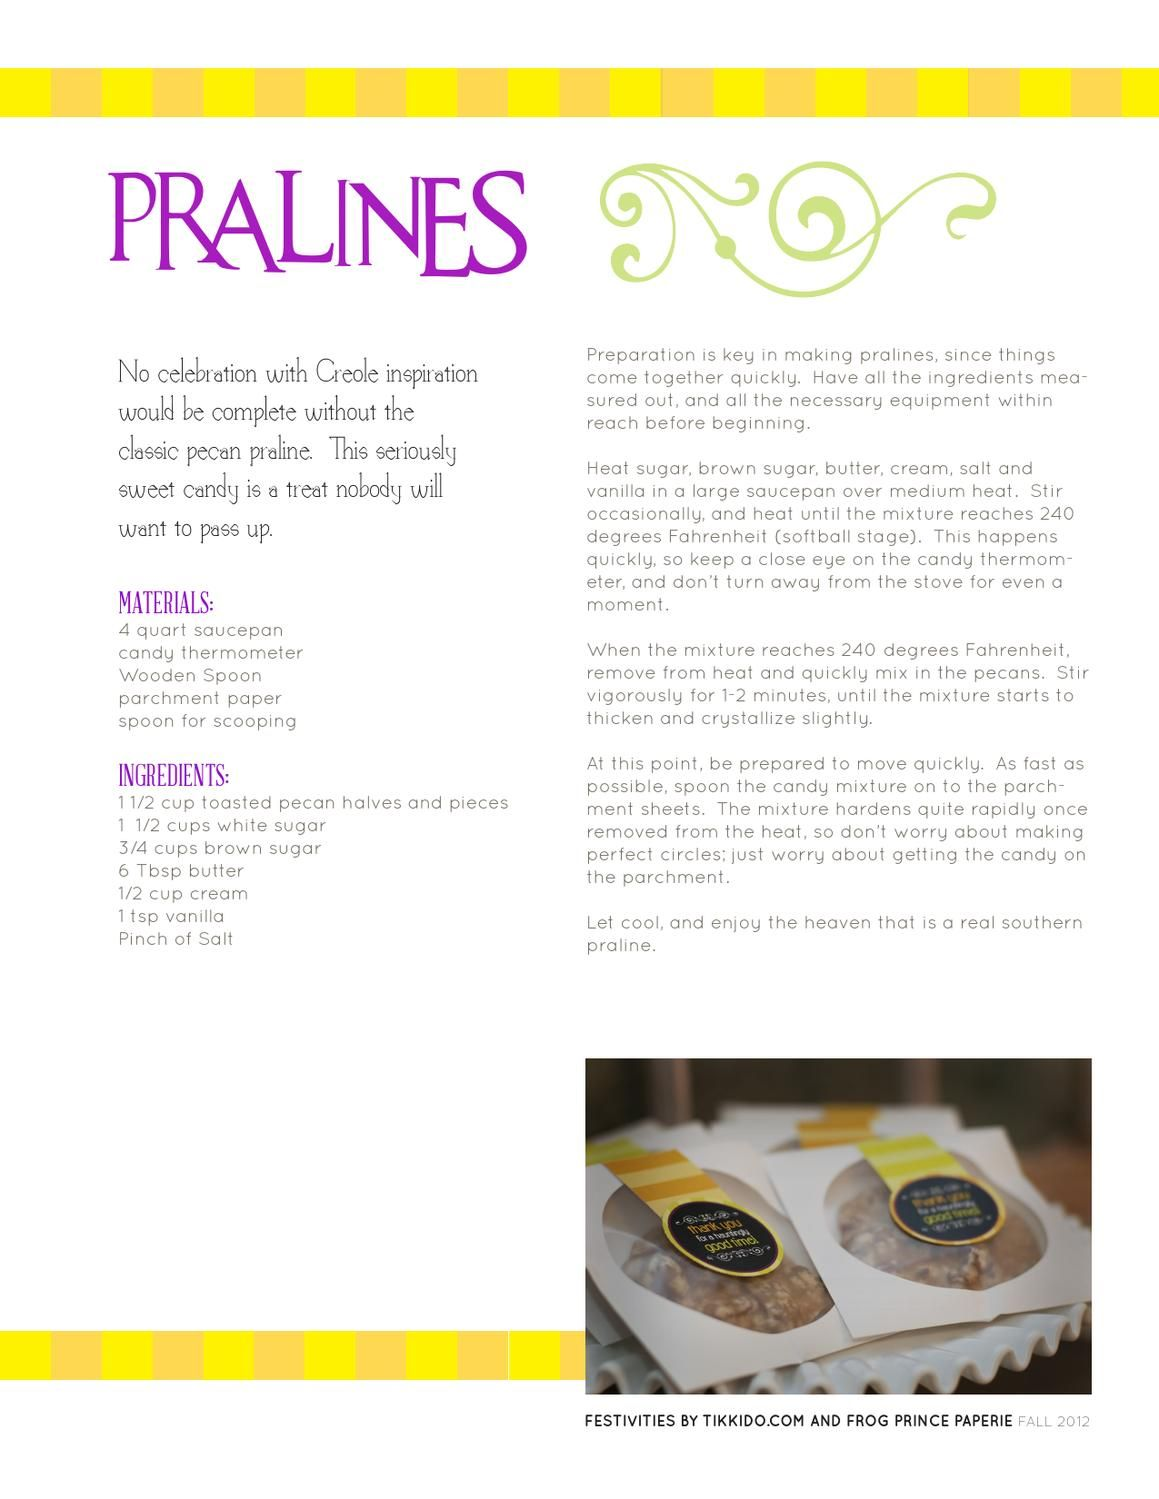 ISSUU - Festivities Magazine Fall 2012 by Frog Prince Paperie and Tikkido.com